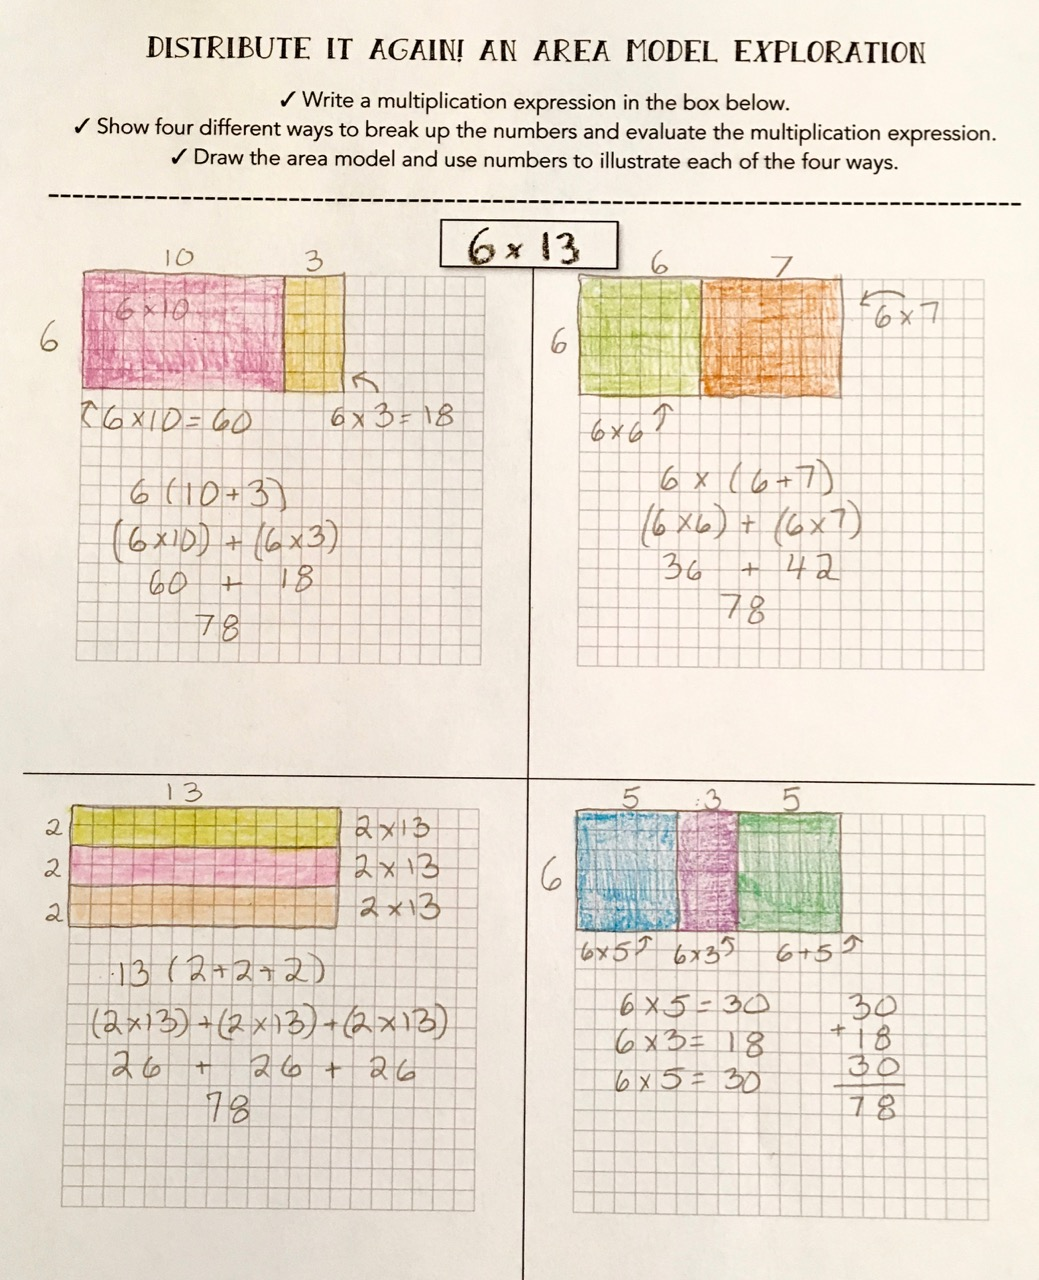 hight resolution of this reinforces the importance of flexibility when thinking about numbers and allows students to personalize their strategies